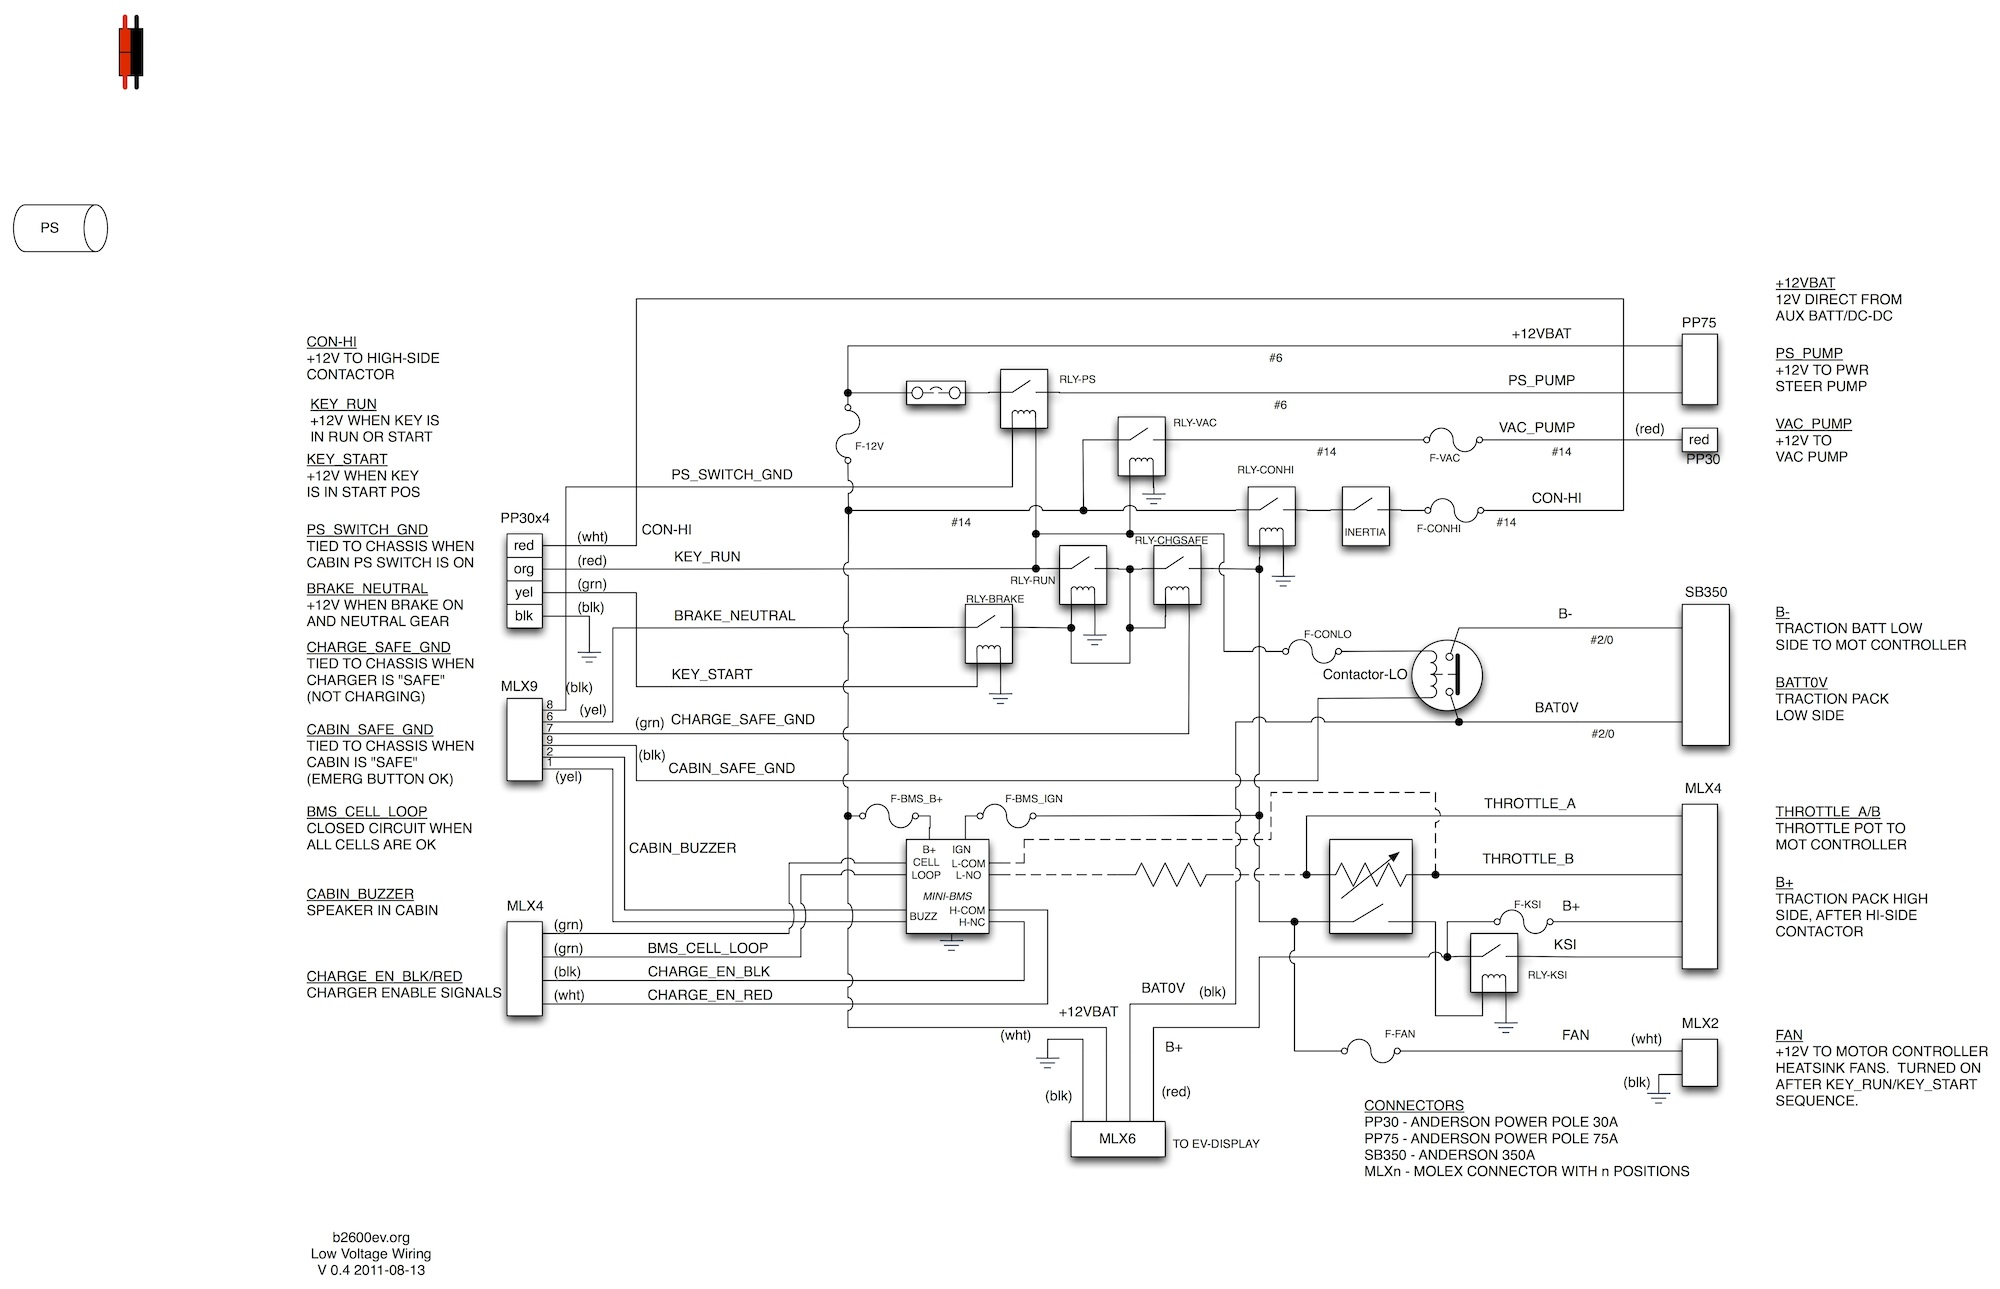 Wiring Diagrams Images Of What Is The Diagram For A Low Voltage